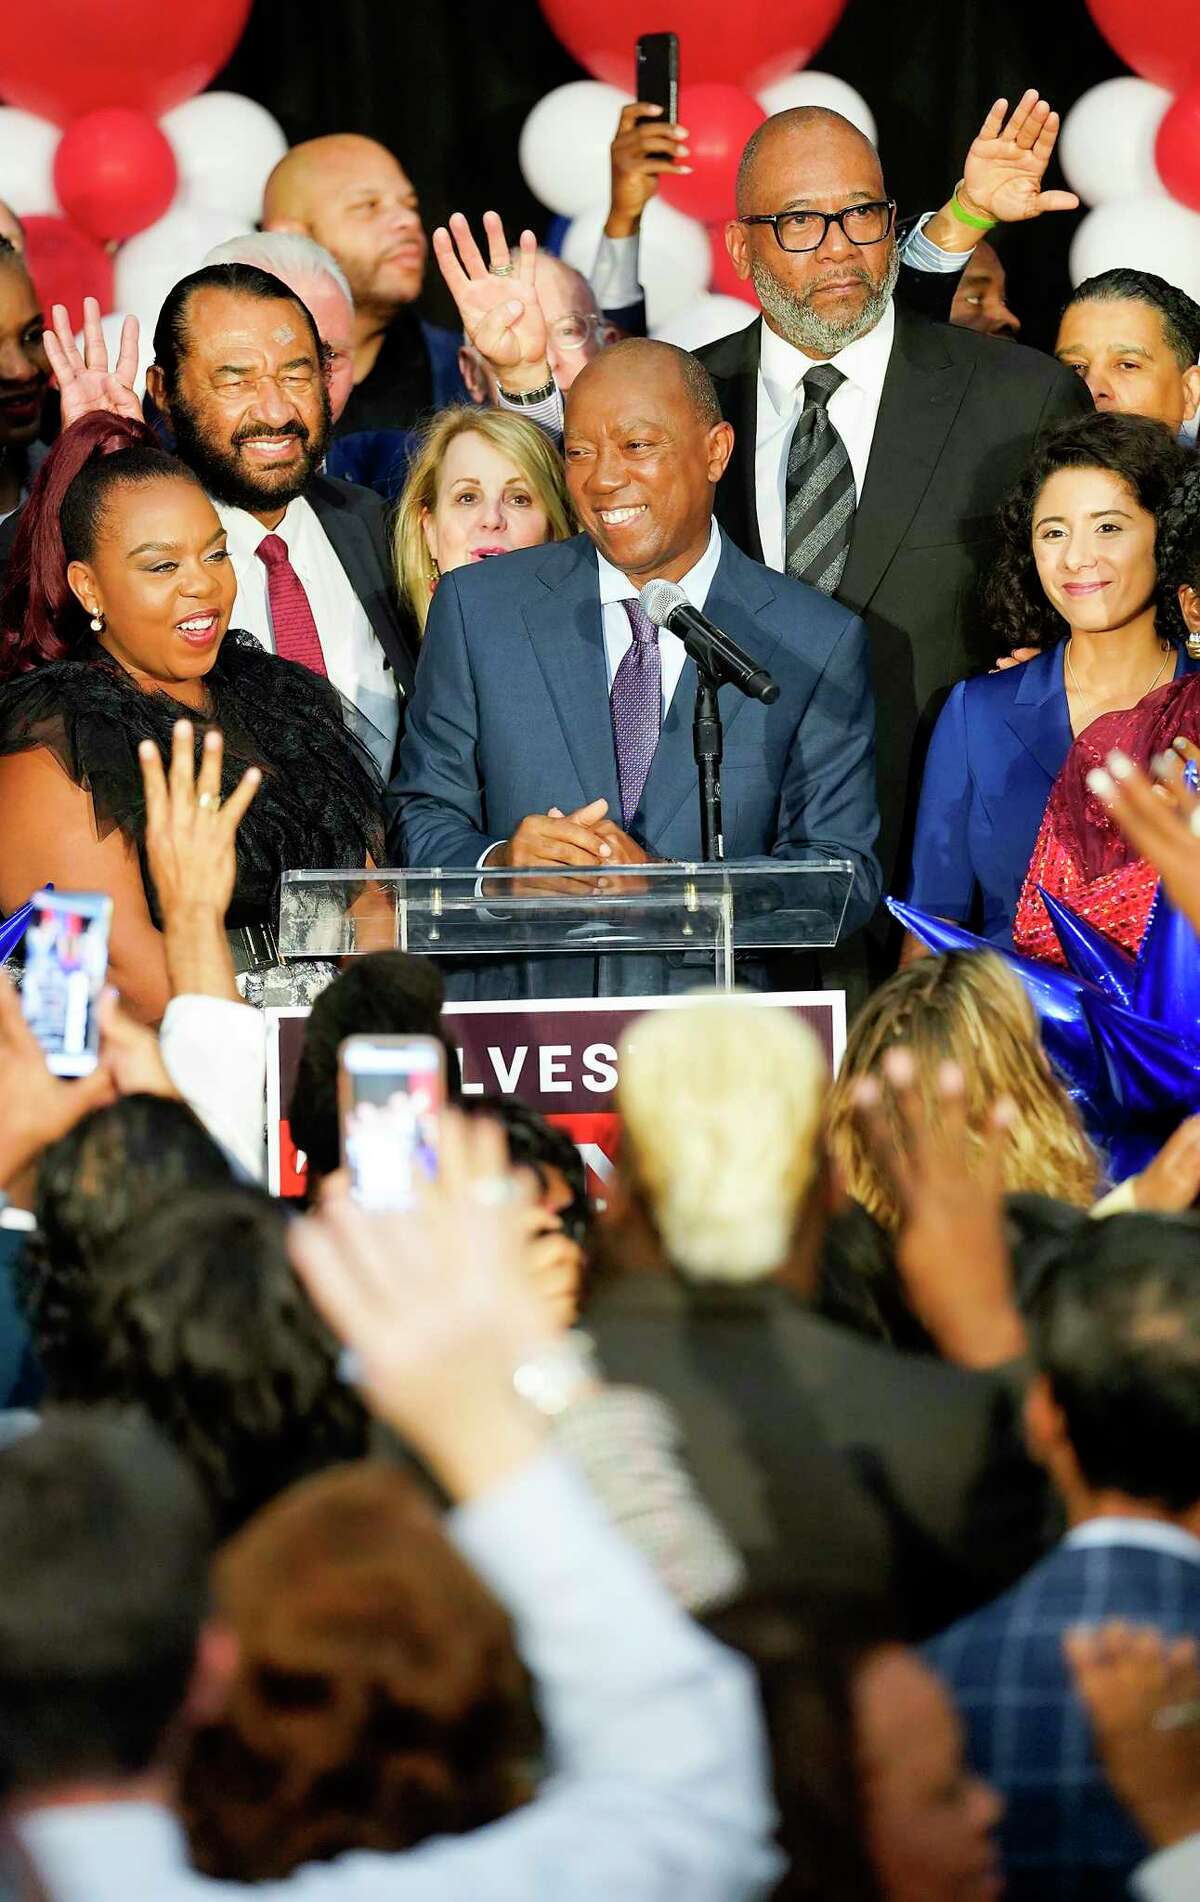 Houston Mayor Sylvester Turner addresses his supporters supporters at his election-night party at the George R. Brown Convention Center on Tuesday, Nov. 5, 2019 in Houston.